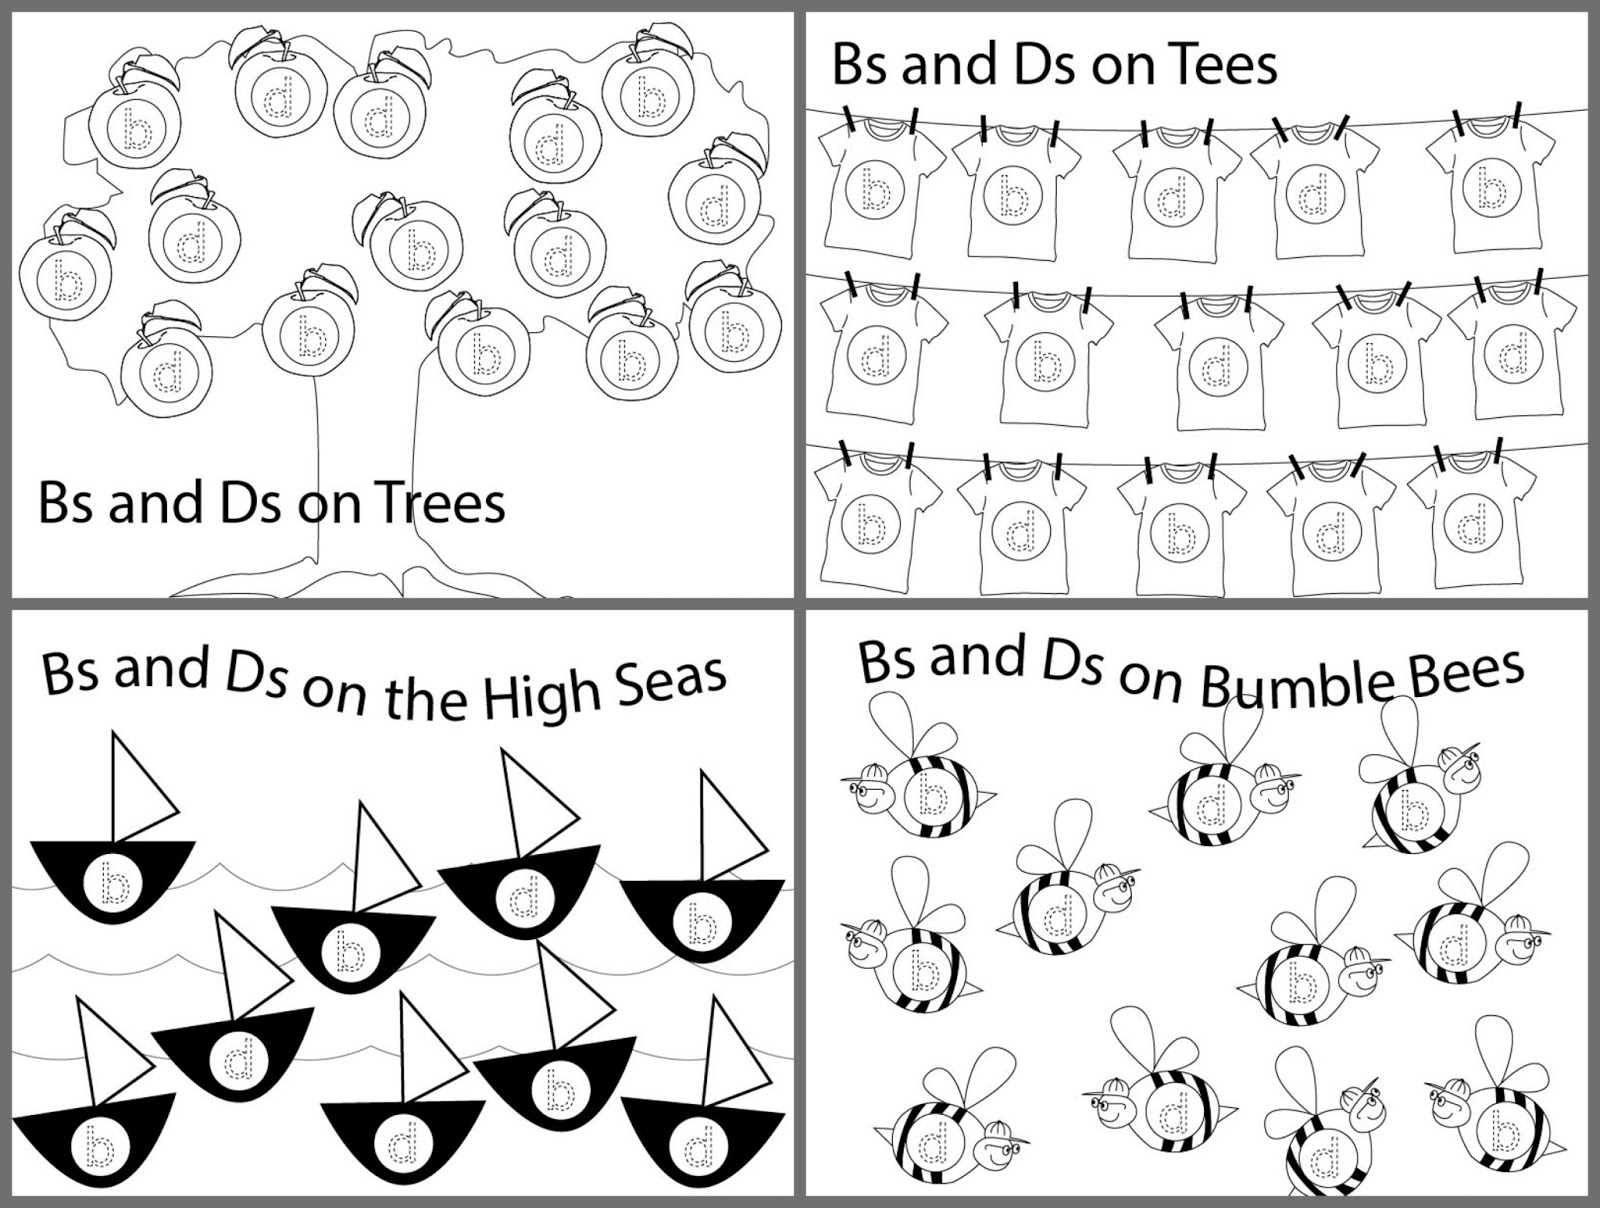 relentlessly fun deceptively educational bs and ds on bumblebees